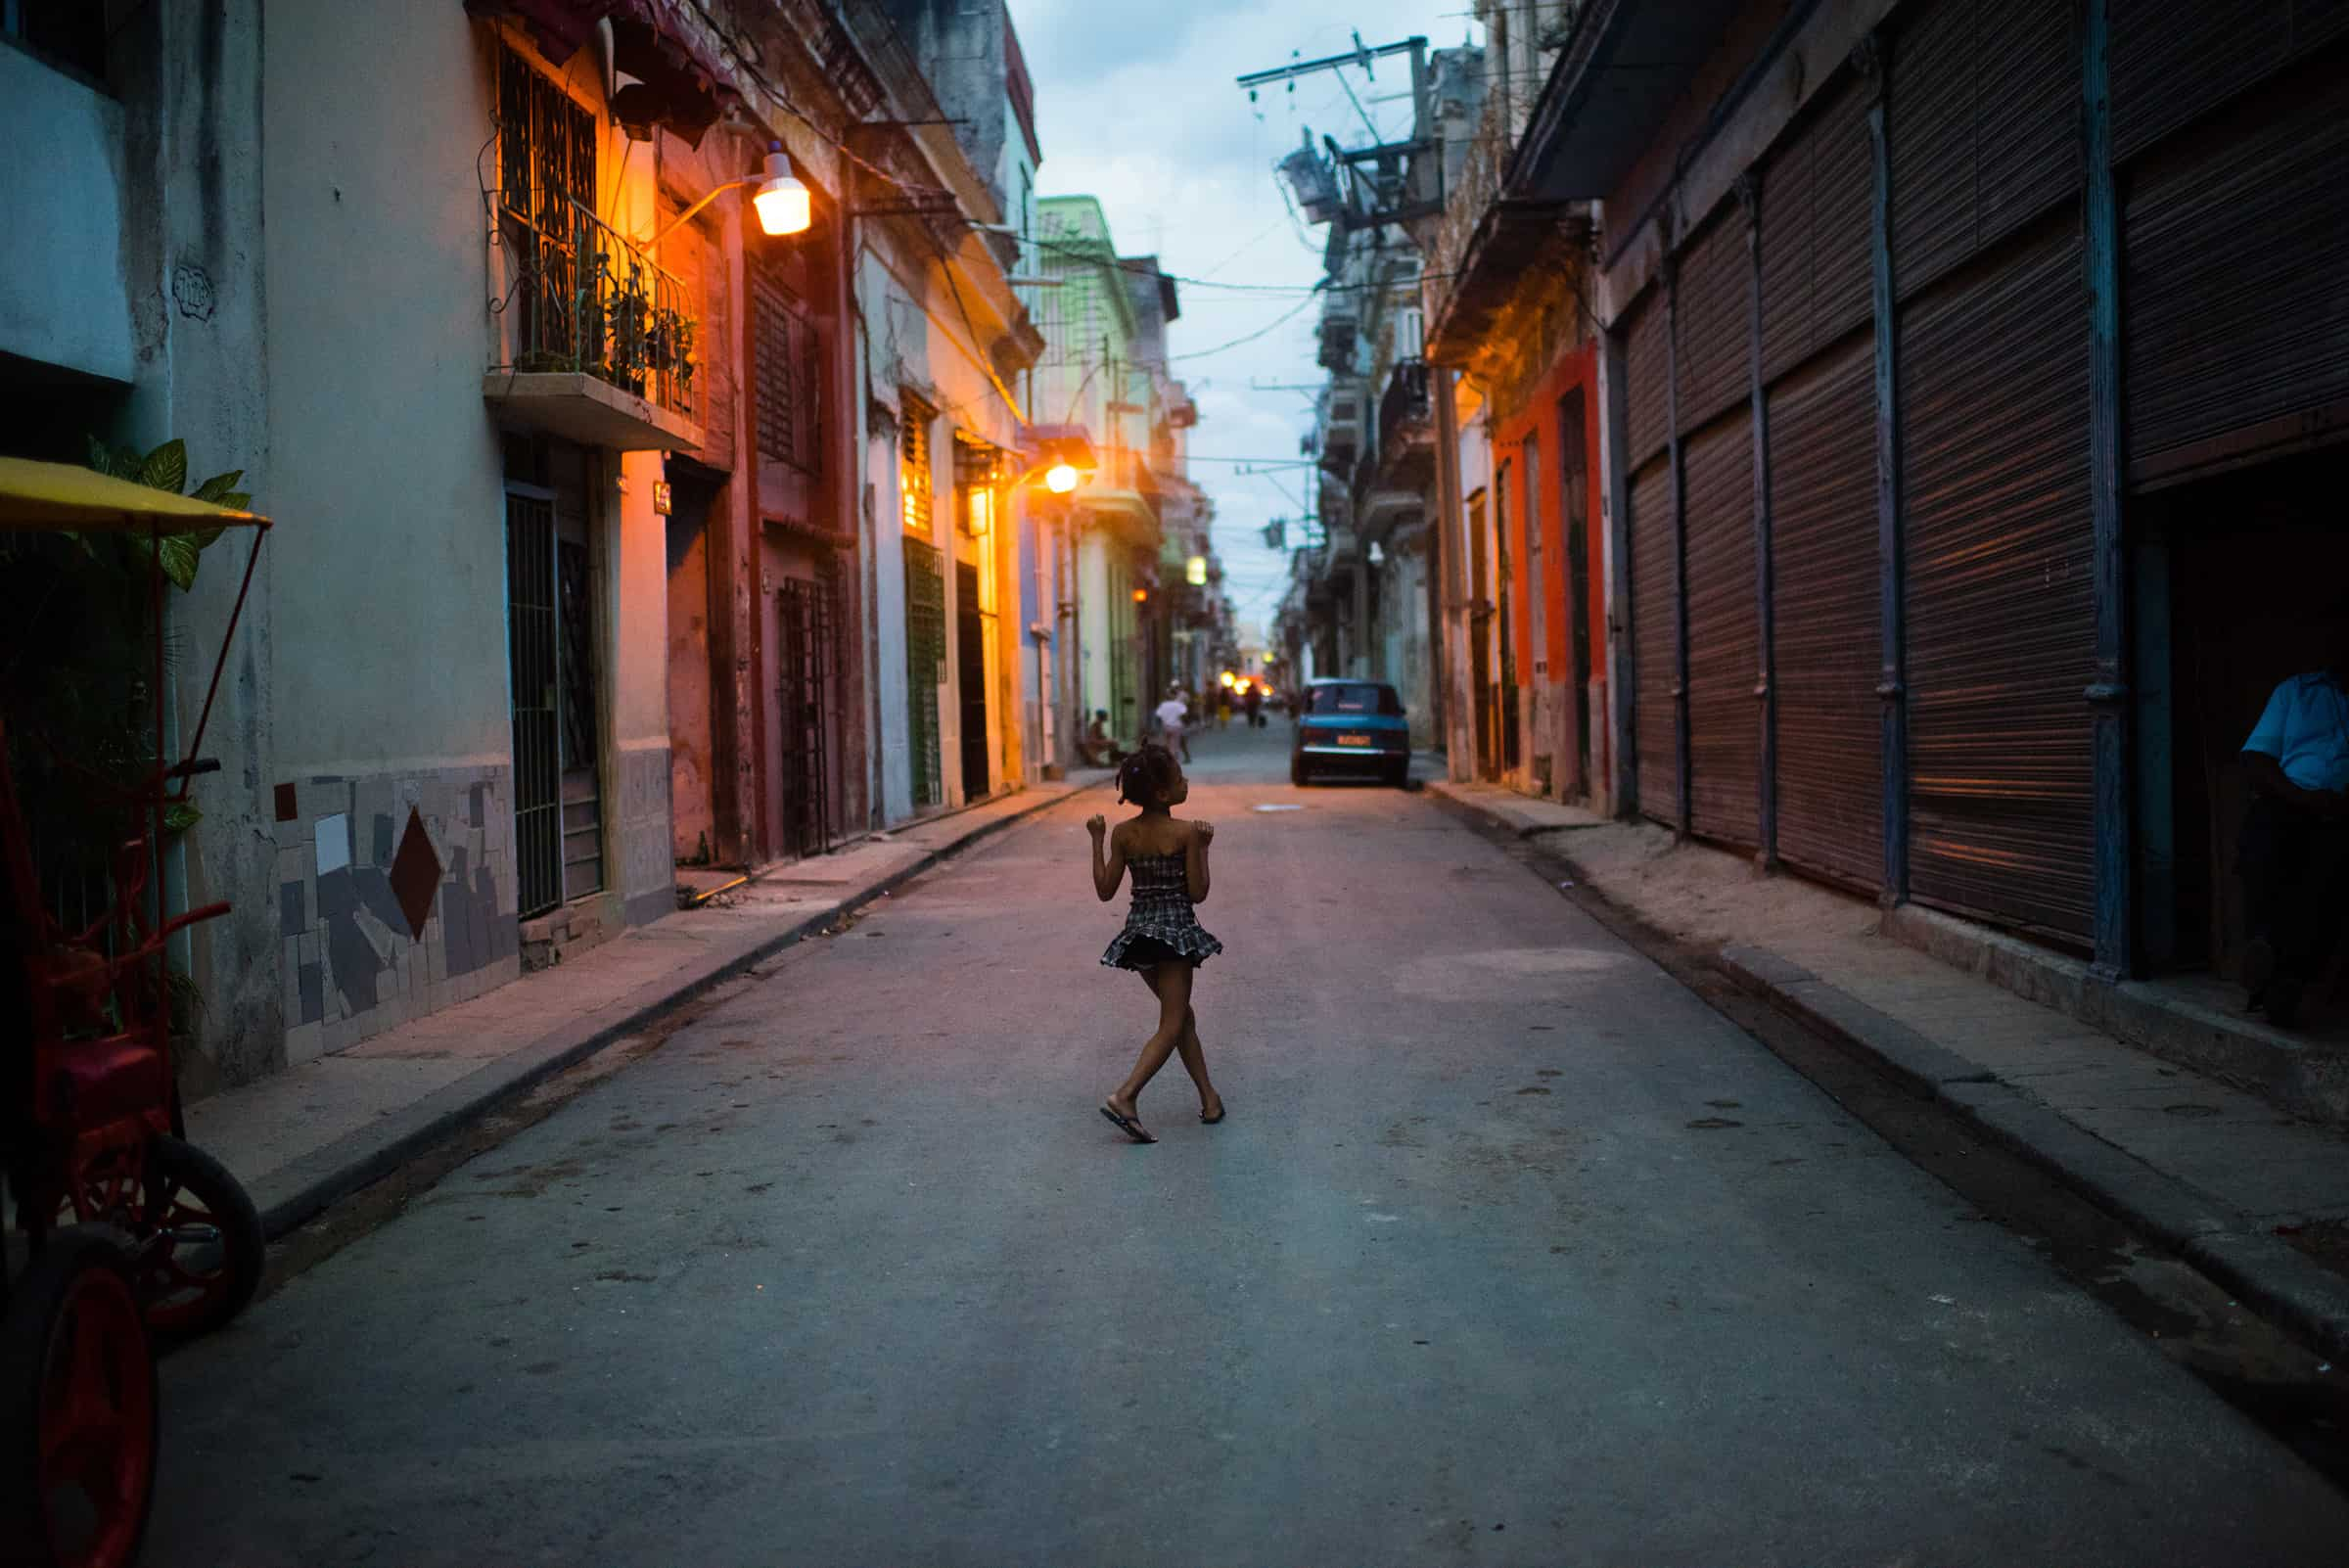 A young girl walks down San Ignacio street in Old Havana as the sun sets.